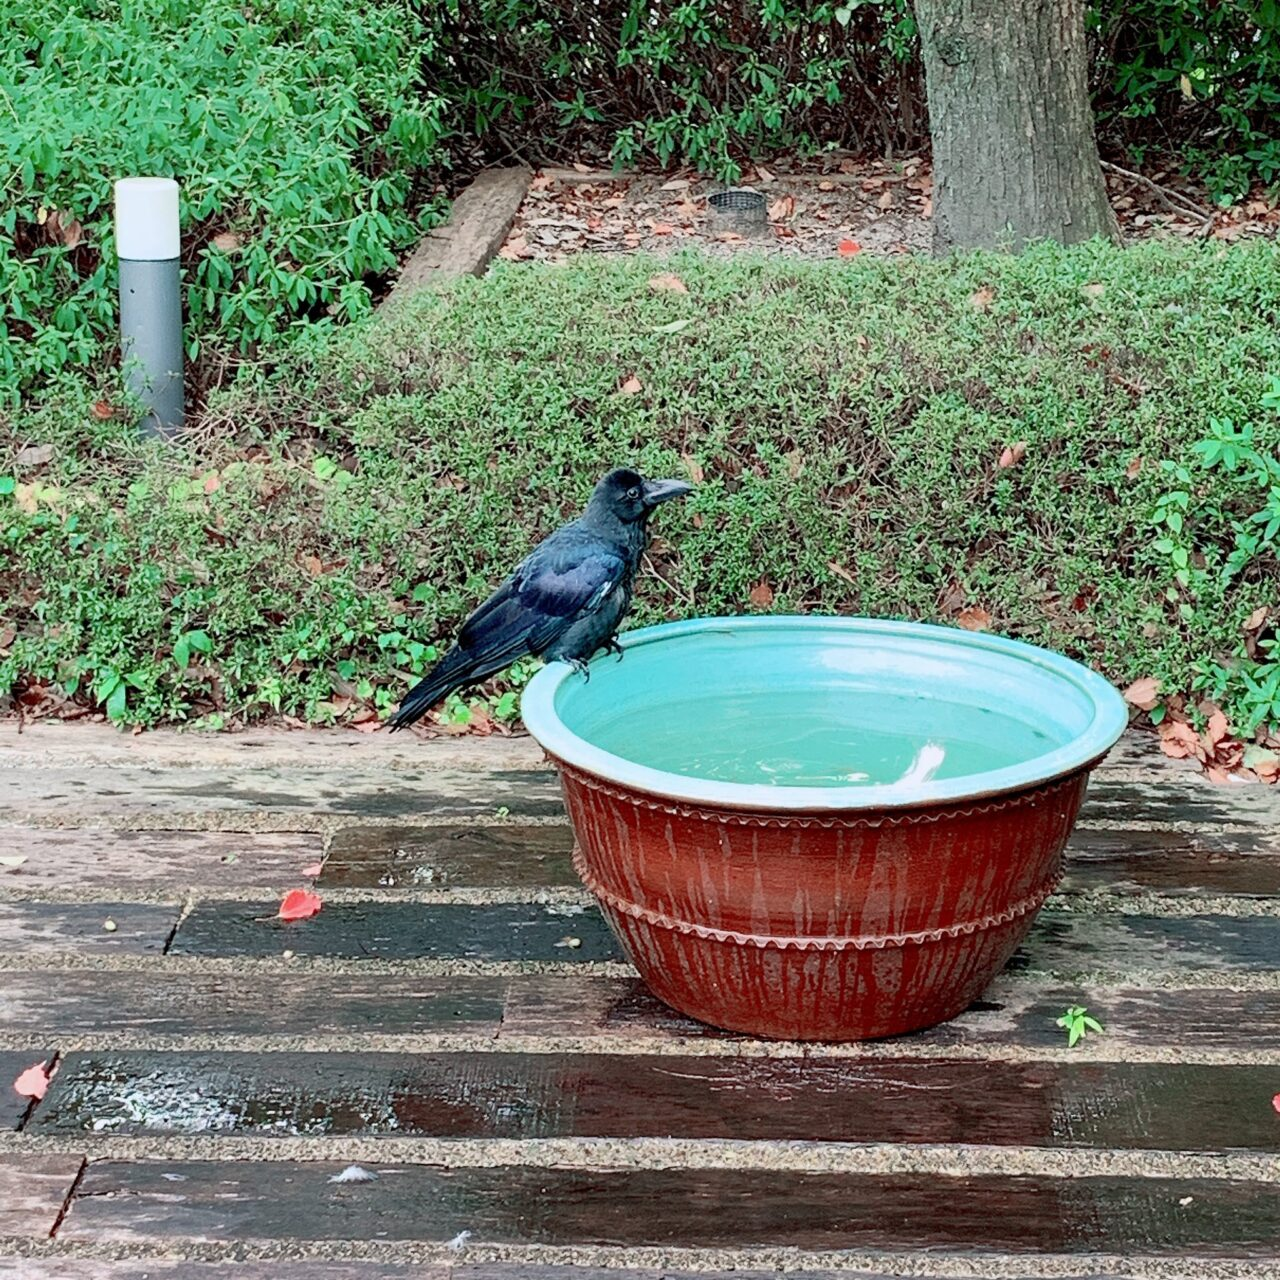 a crow drinks water